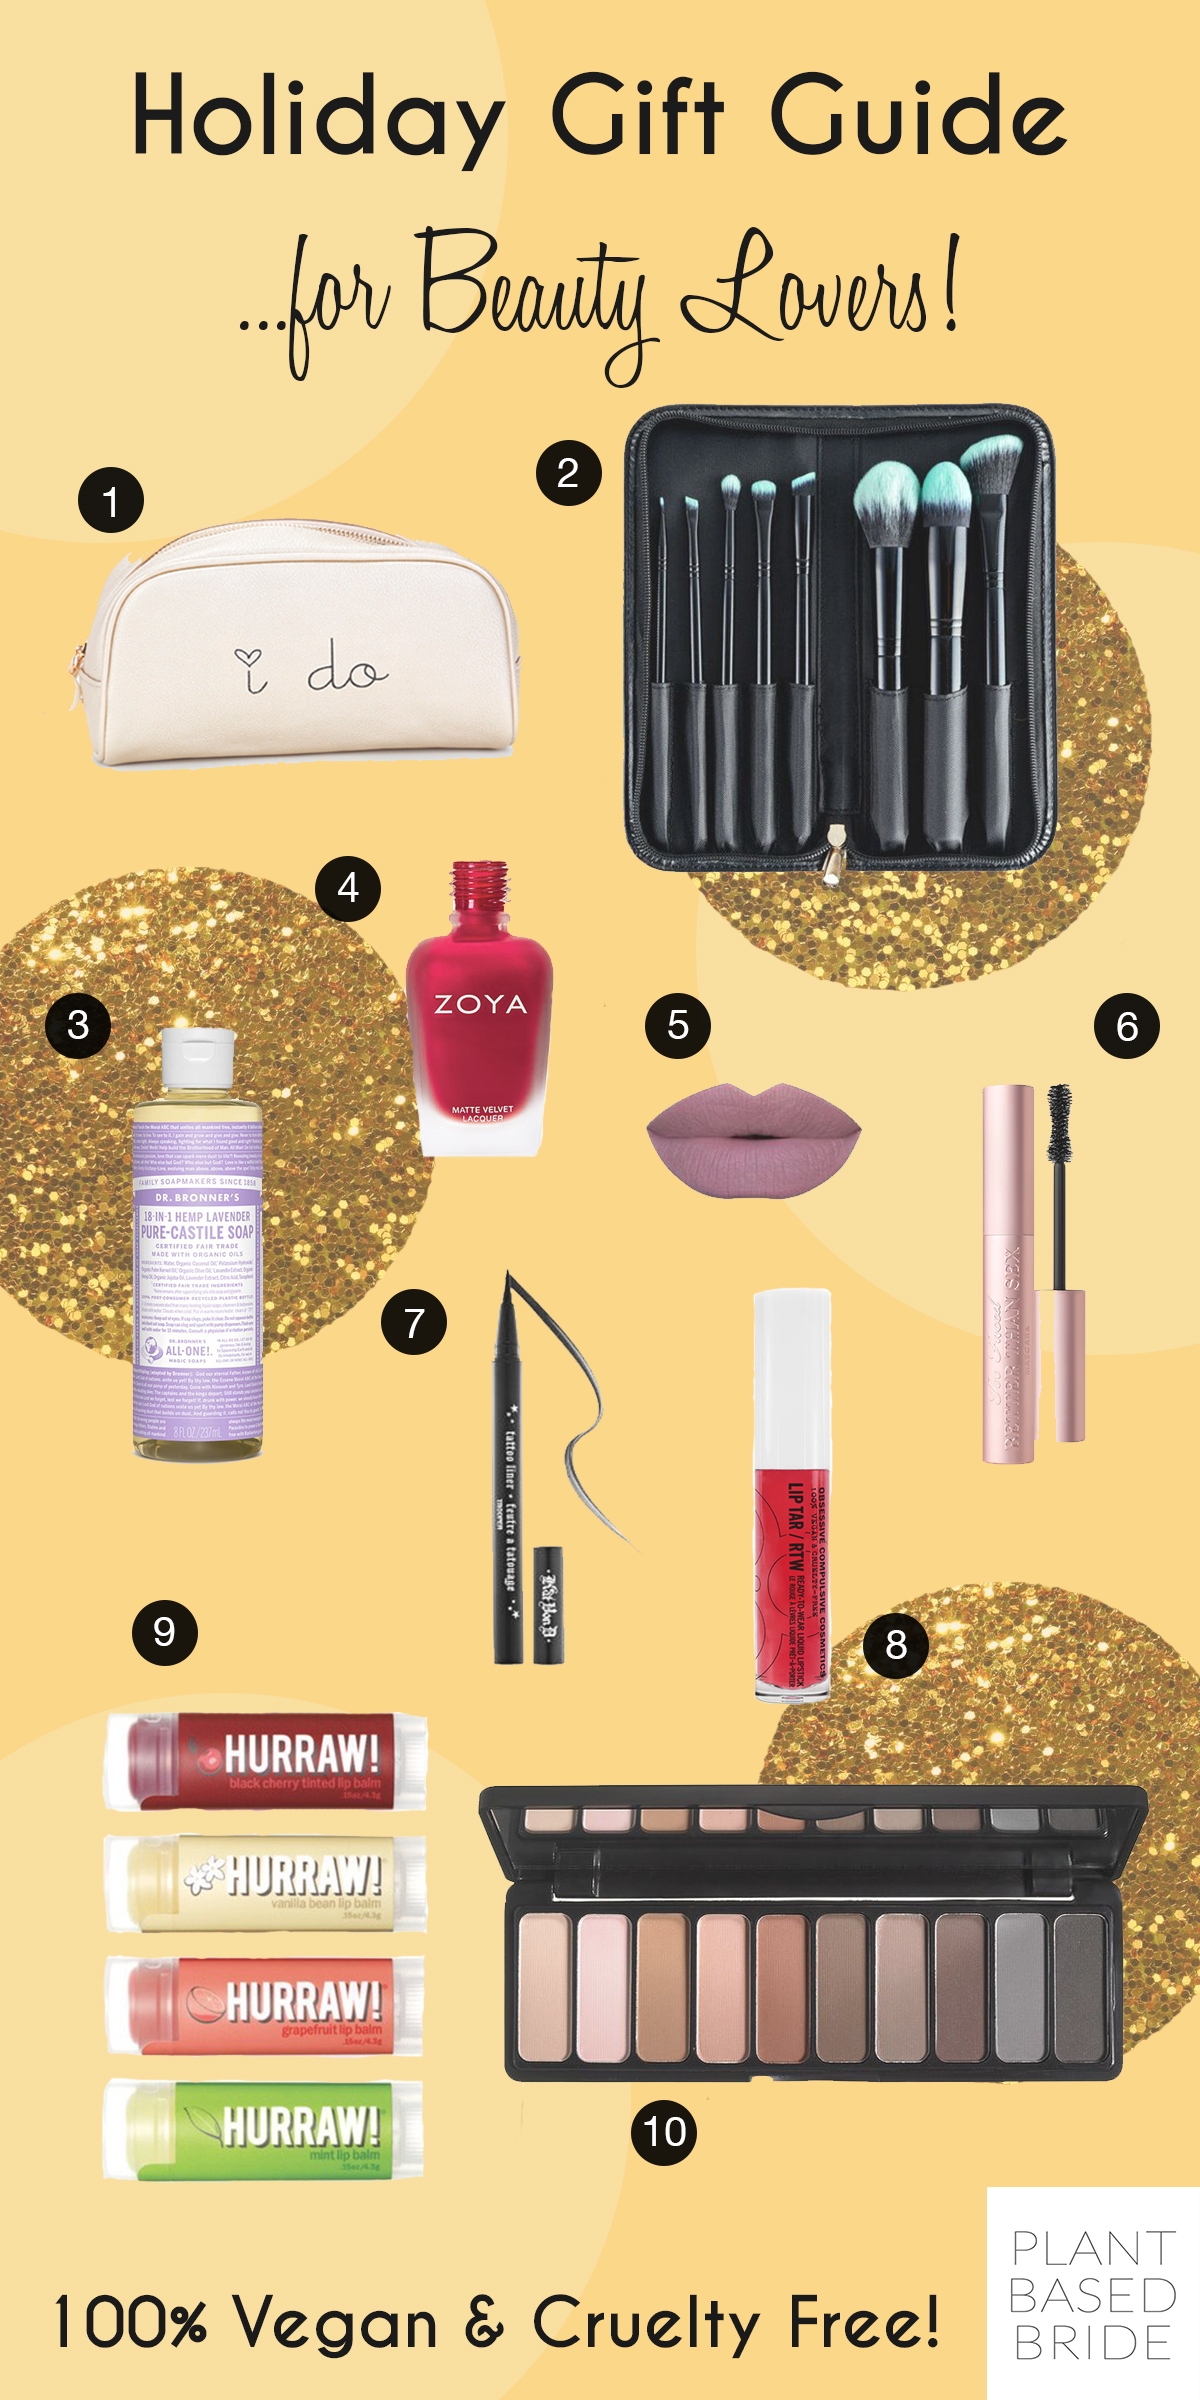 It's holiday gift guide time!  Find the perfect gift for the beauty lover on your list.